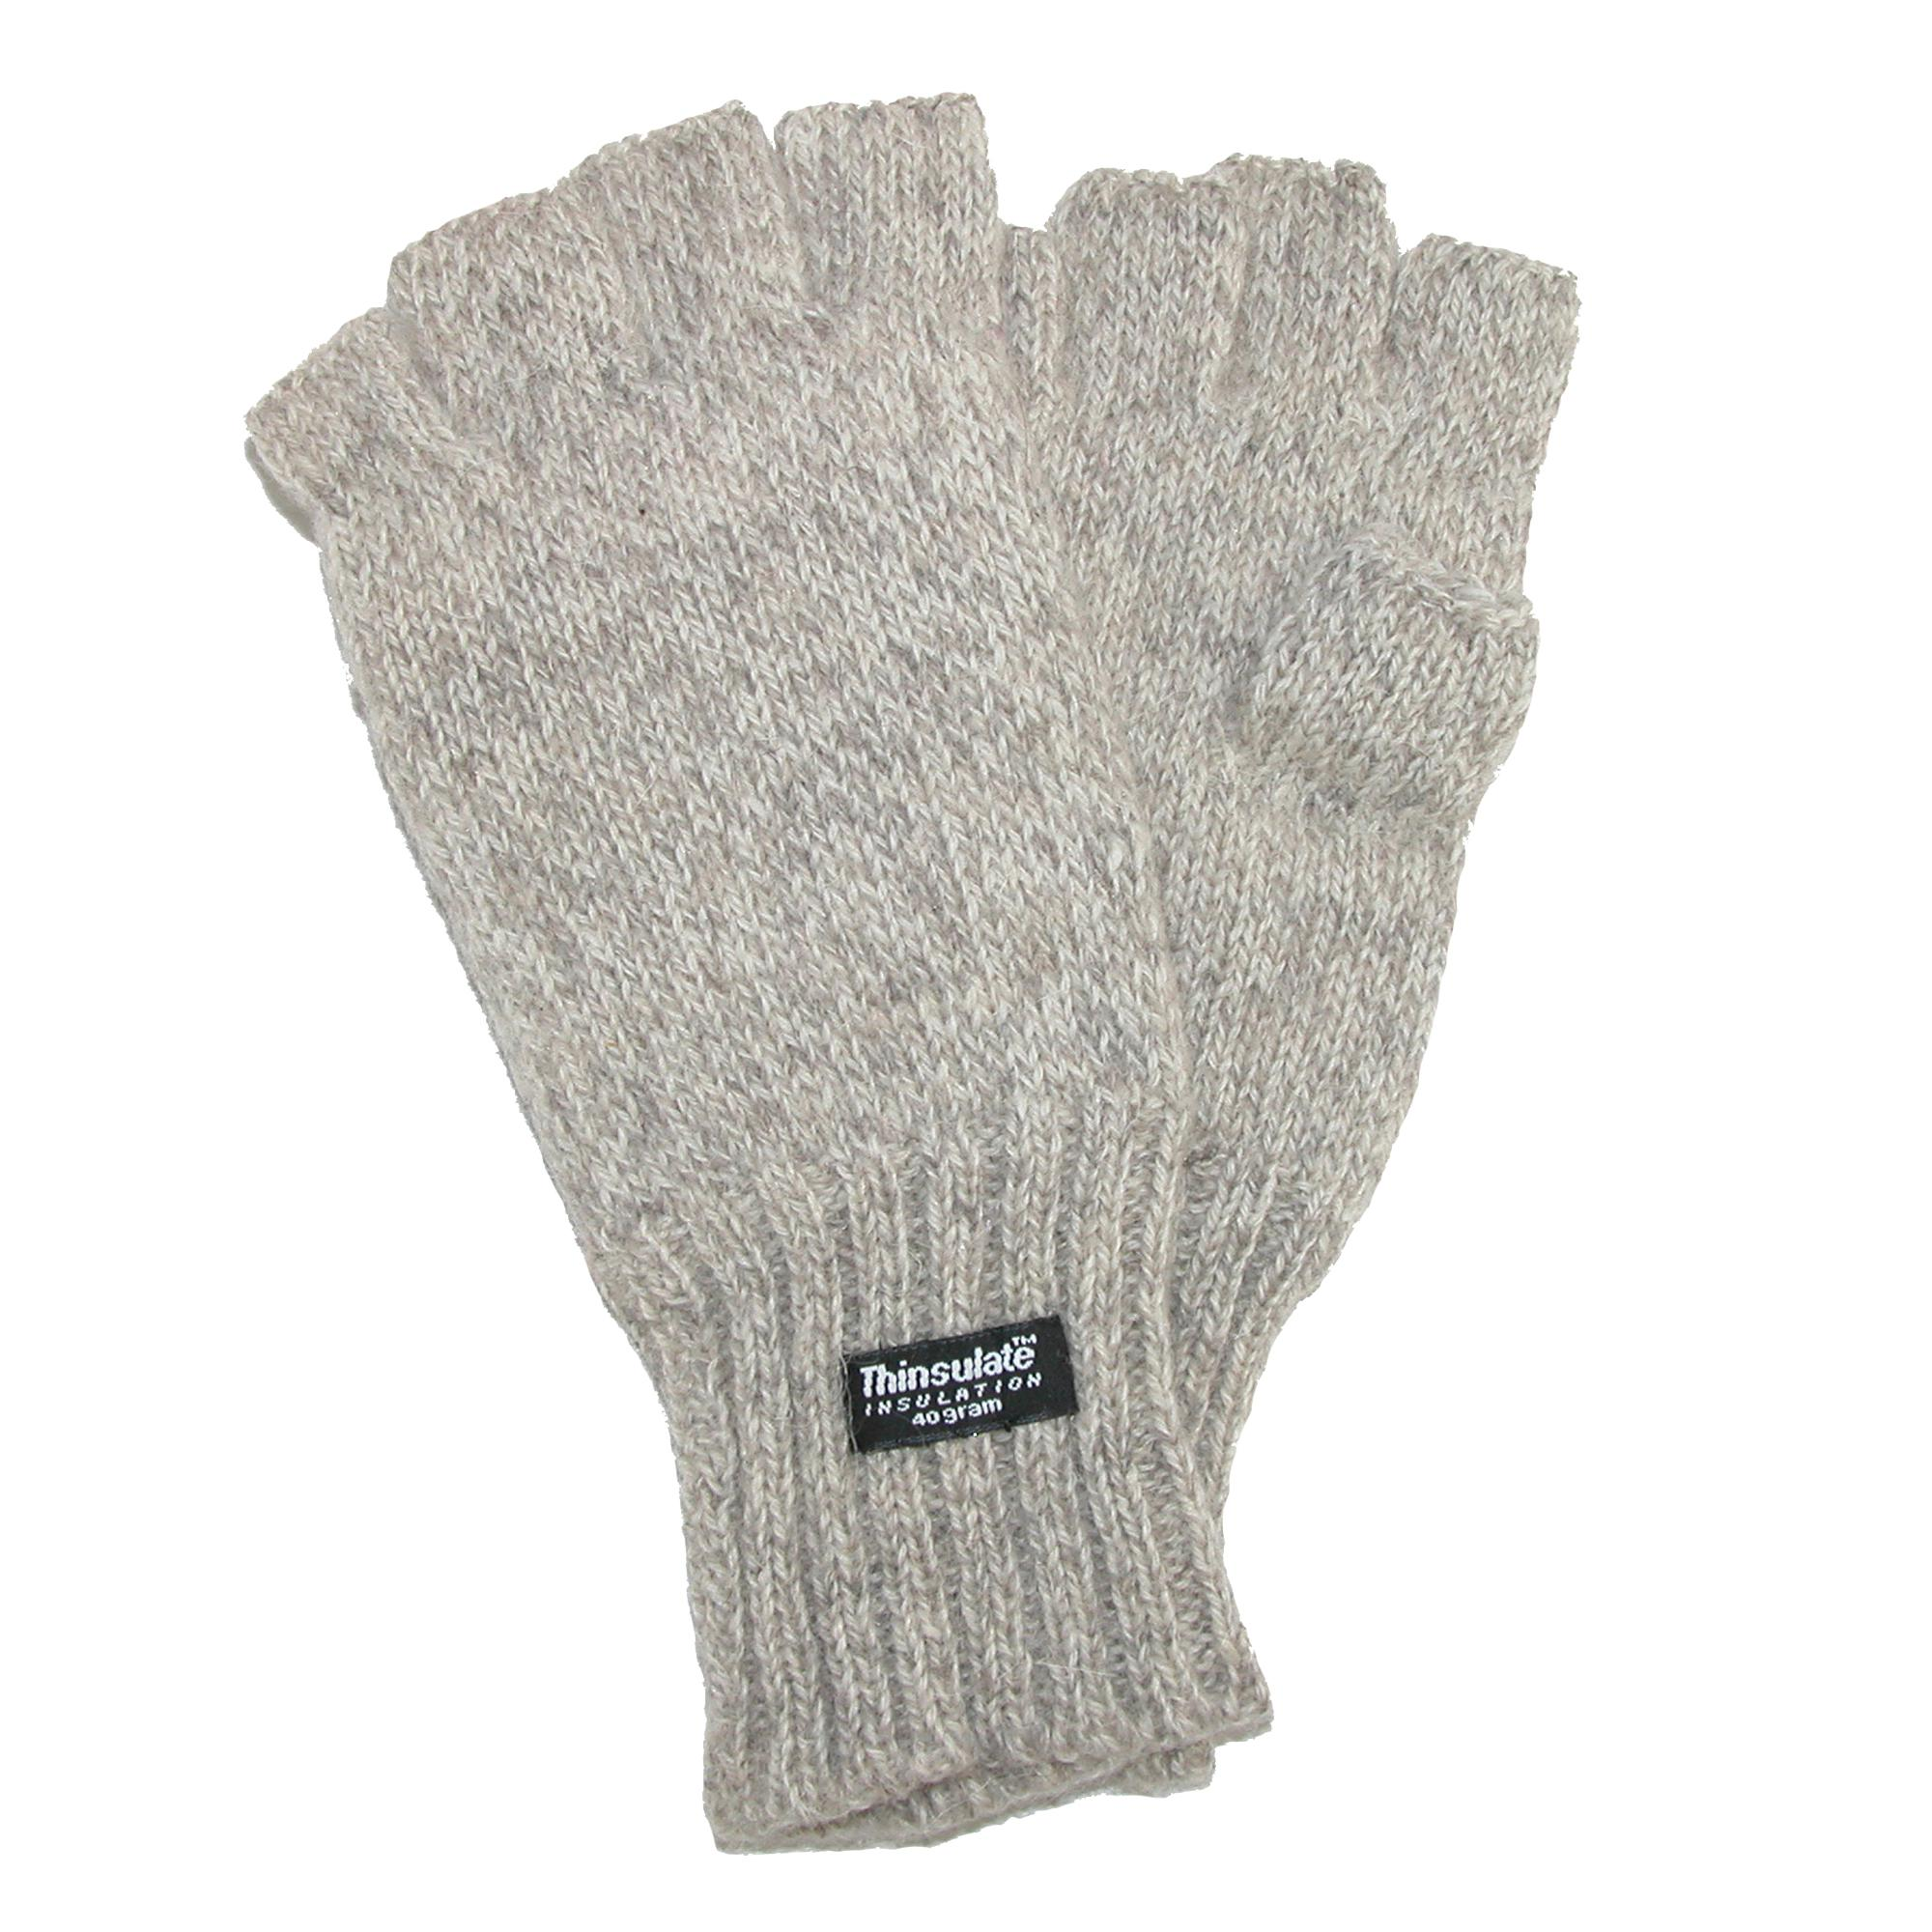 Dorfman_Pacific_Men's_Wool_Fingerless_Winter_Gloves_with_Thinsulate_-